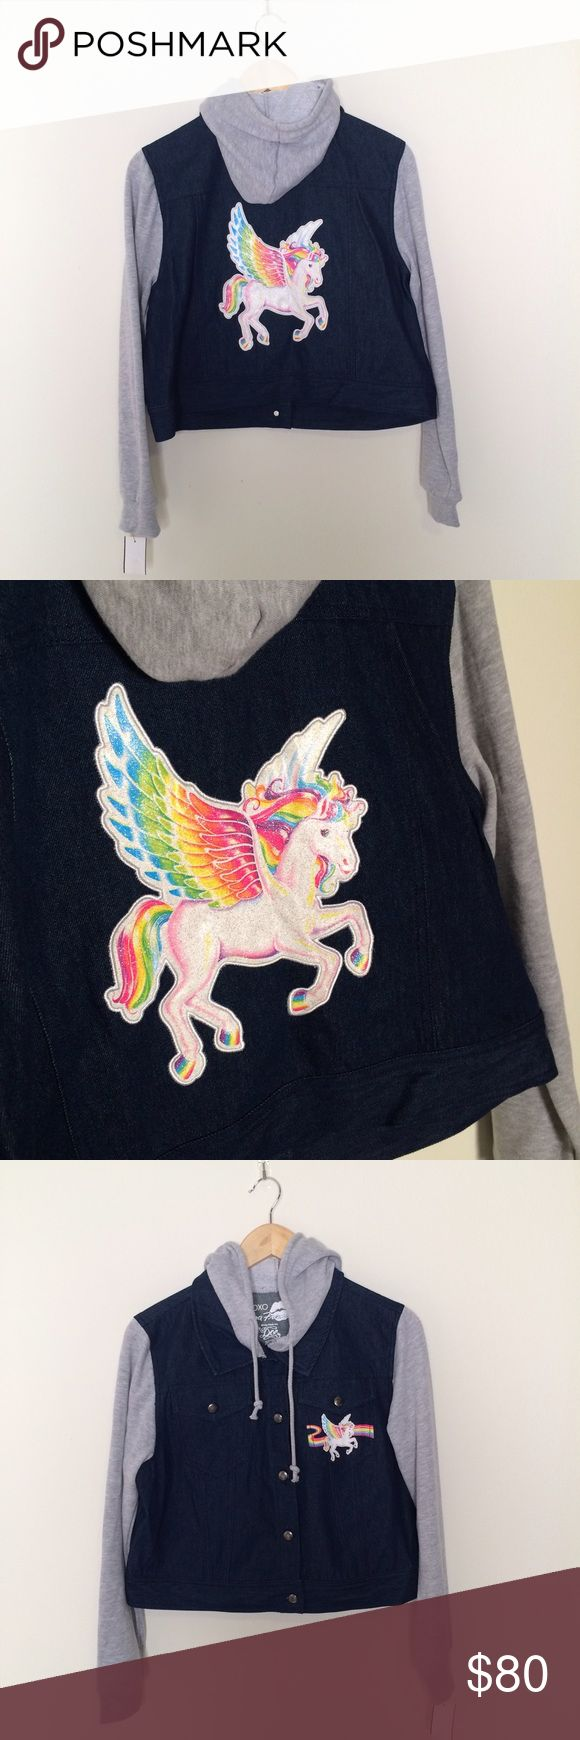 "NWT Lisa Frank Jacket Pegasus Unicorn Rainbow Jrs. Thanks for stopping by! This cute Lisa Frank jacket is brand new and could be yours! Size Large in juniors. Please refer to measurements.  Self: 100% Cotton Contrast: 60% Cotton, 40% Polyester  Made in China  Length from top of collar to bottom of hem: 17"" Pit to Pit: 21"" Shoulder to Shoulder: 16"" Sleeves: 23.5""  *Comes from a pet free and smoke free home* Lisa Frank Jackets & Coats Jean Jackets"